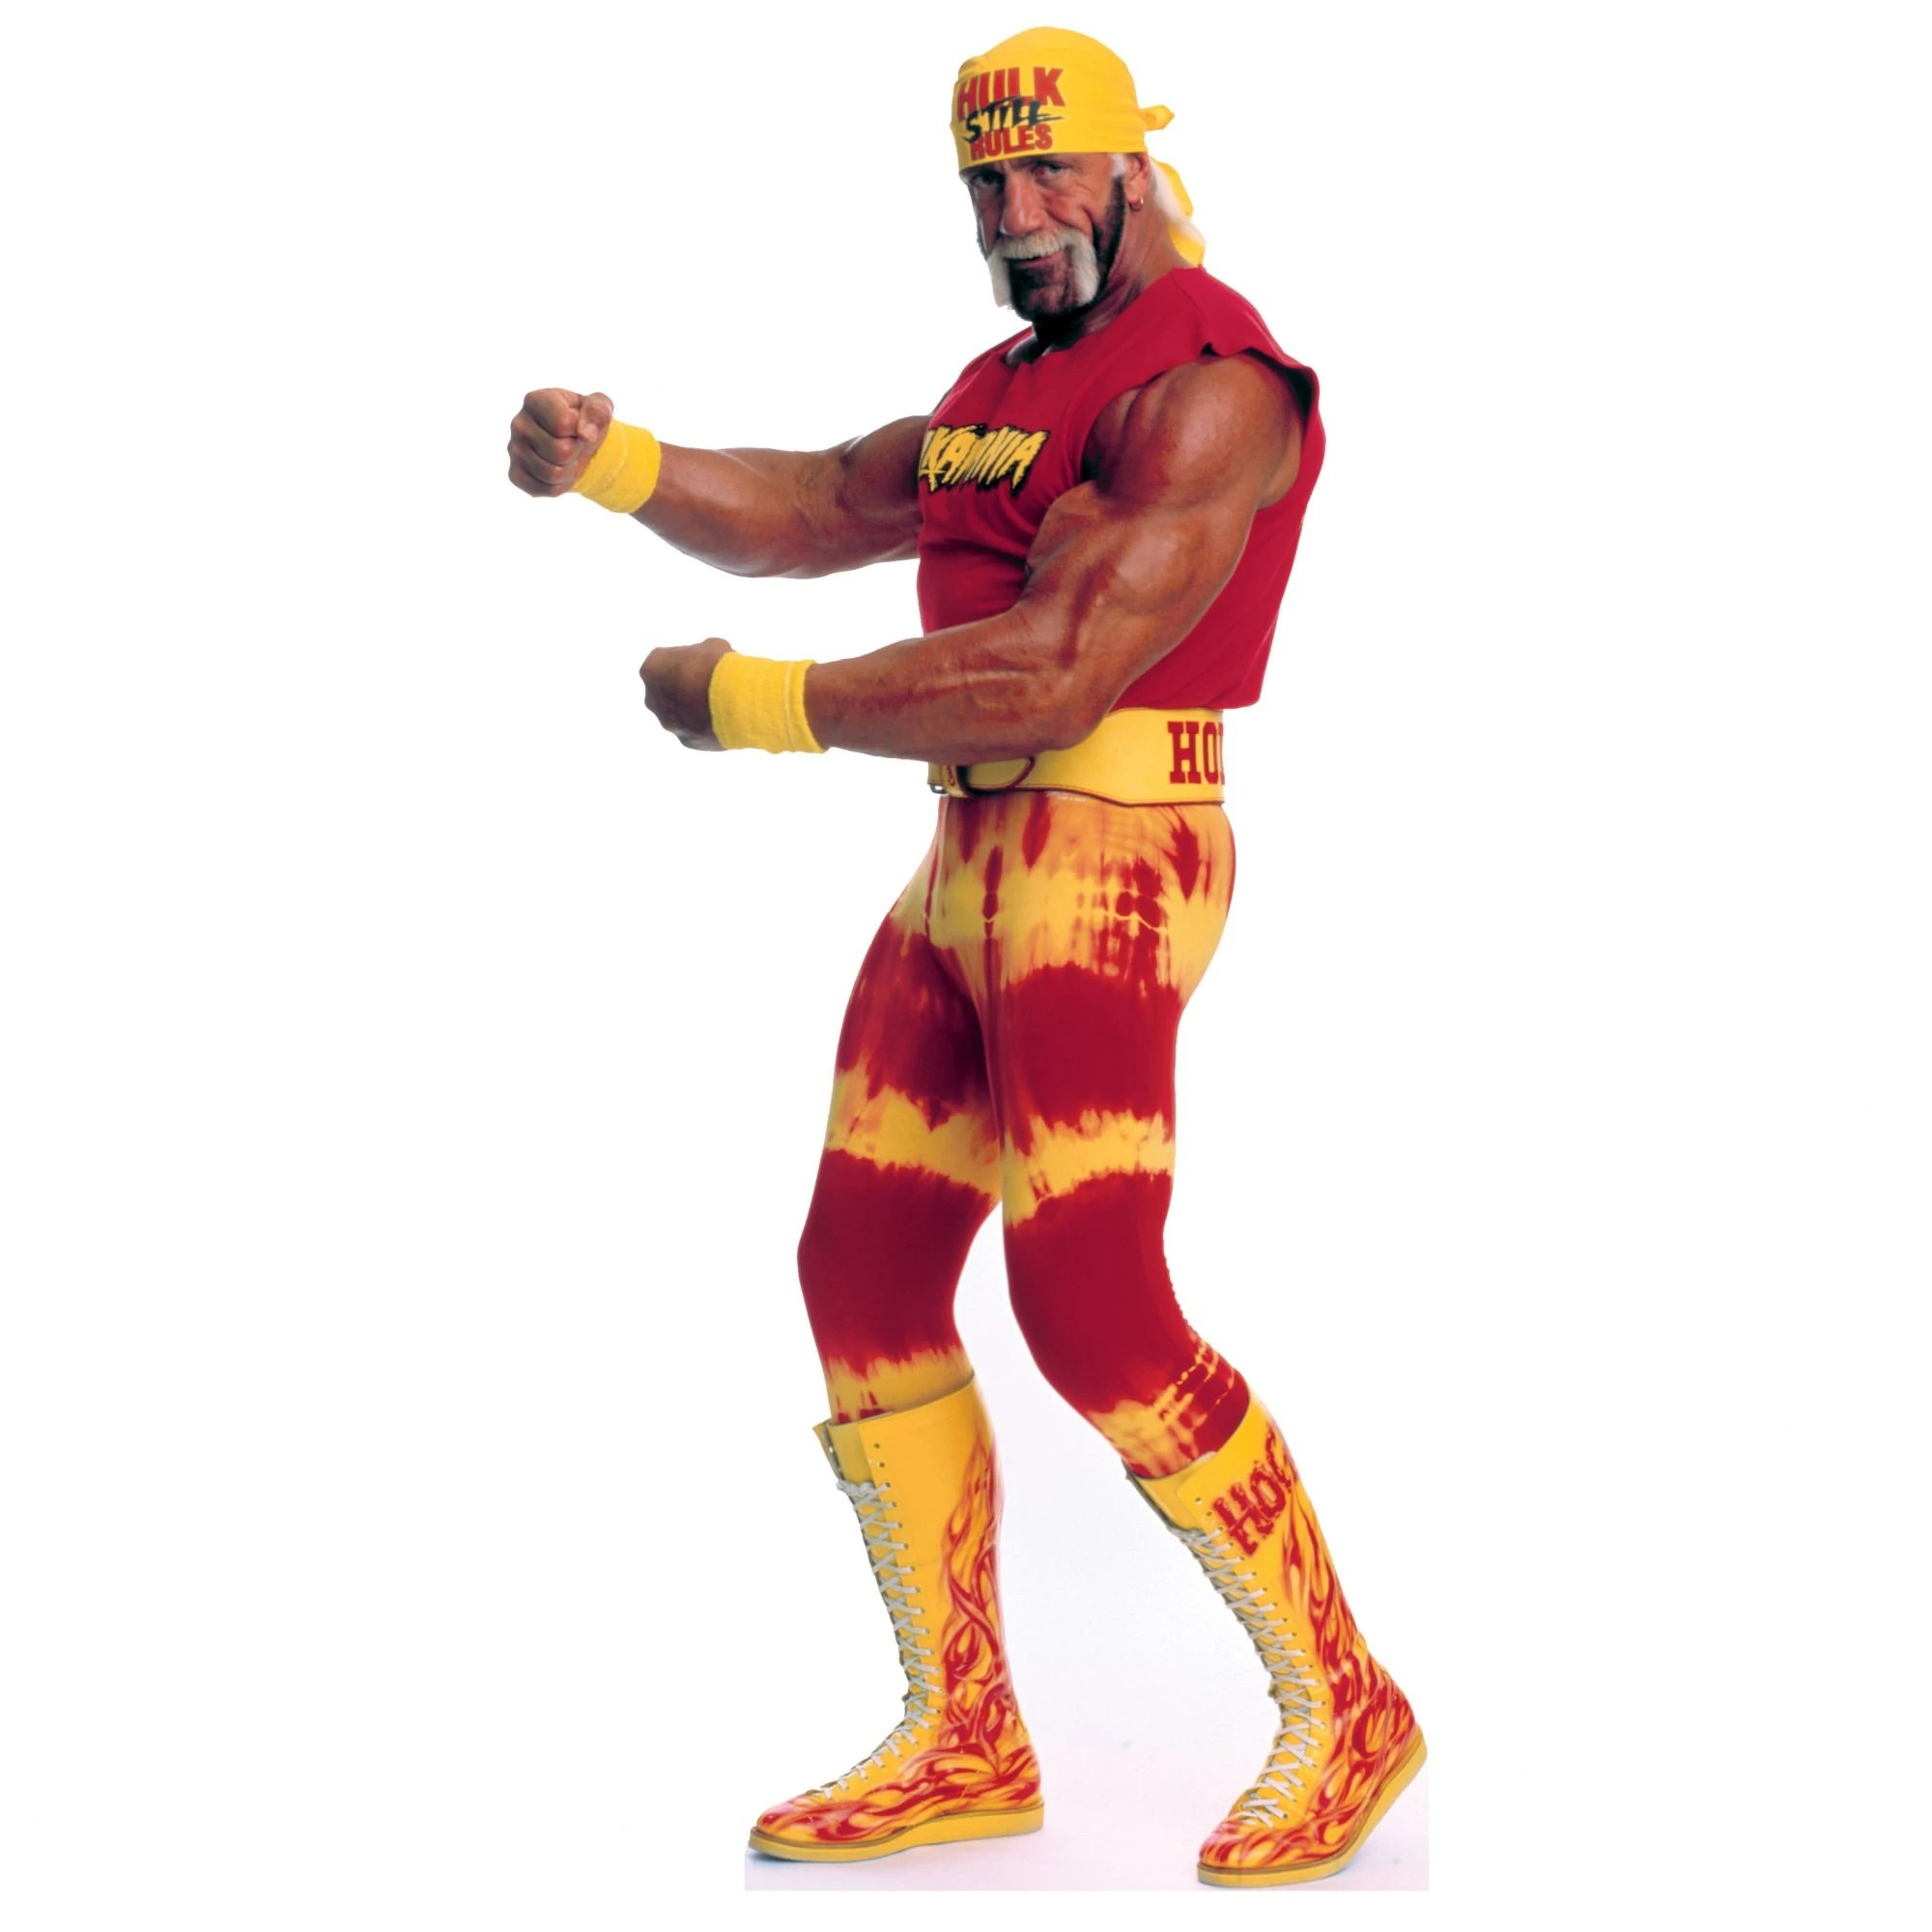 Hulk Hogan Wiki Image World 43wrestling 43entertainment 43 43hulk 43hogan 43life